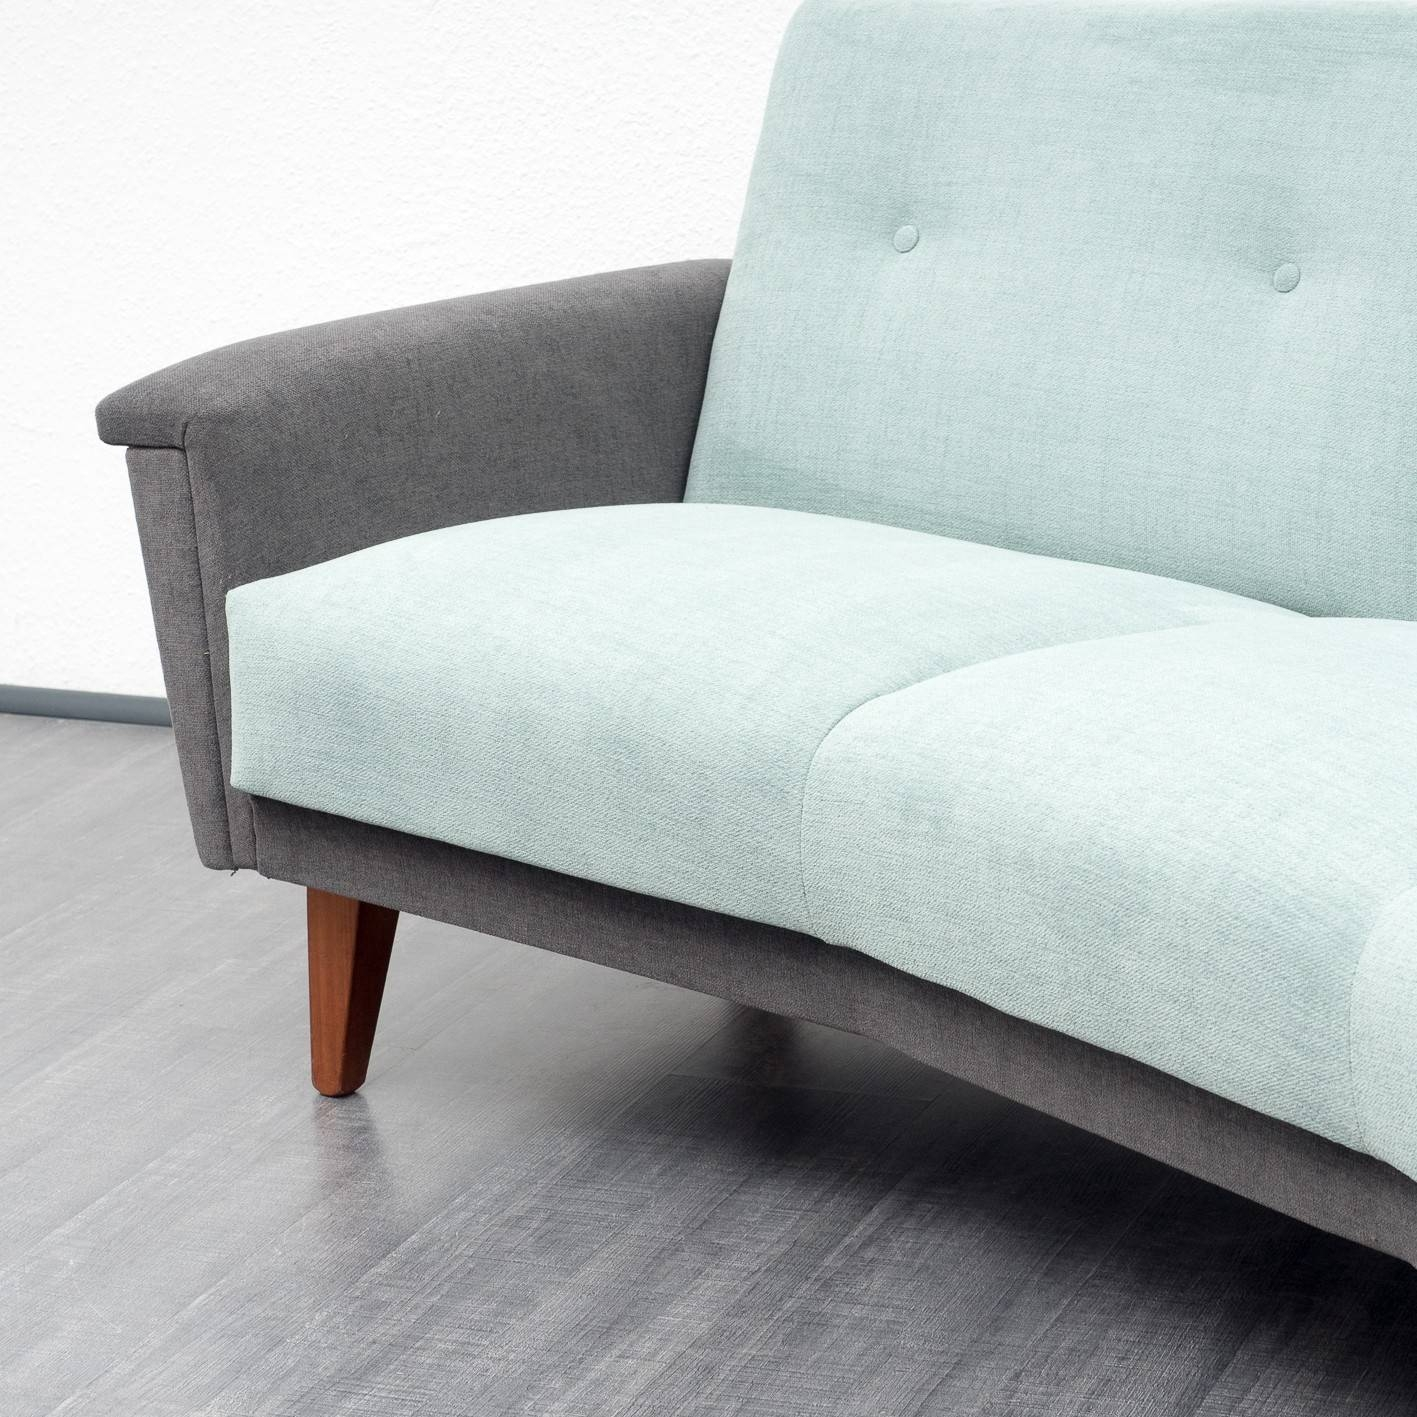 Semicircular Sofa In Light Turquoise And Grey Fabric - 1950S in Semicircular Sofa (Image 25 of 30)